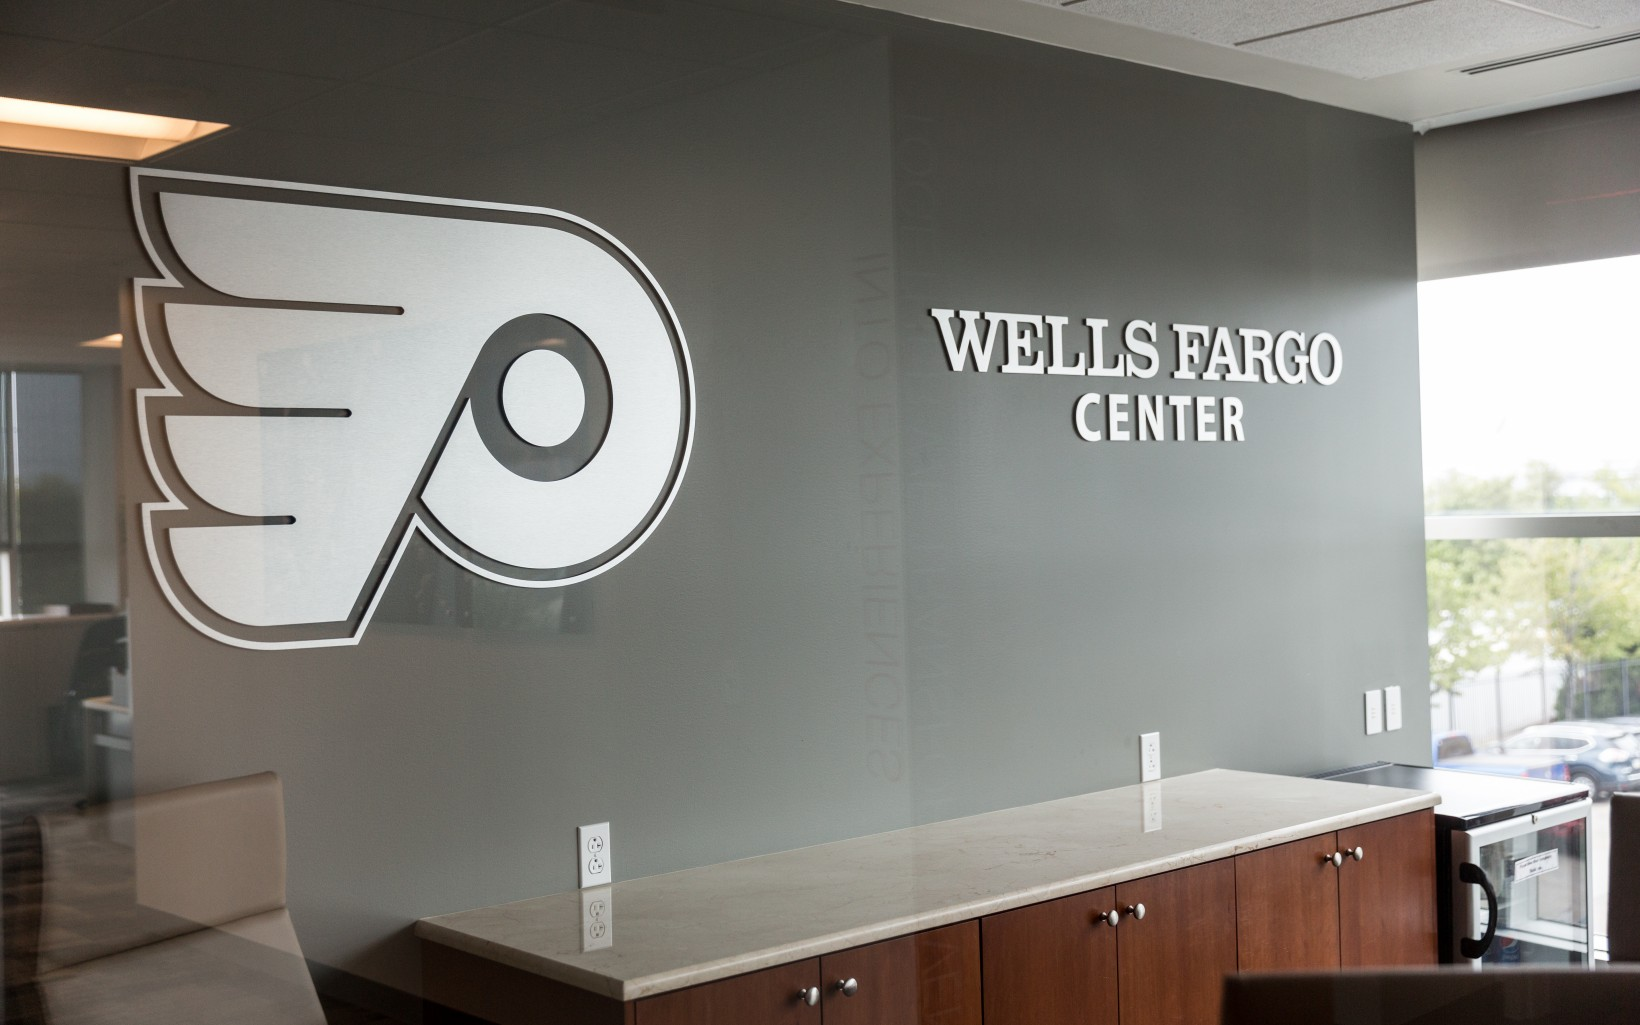 Flyers and Wells Fargo Center logos on the wall of a conference room.